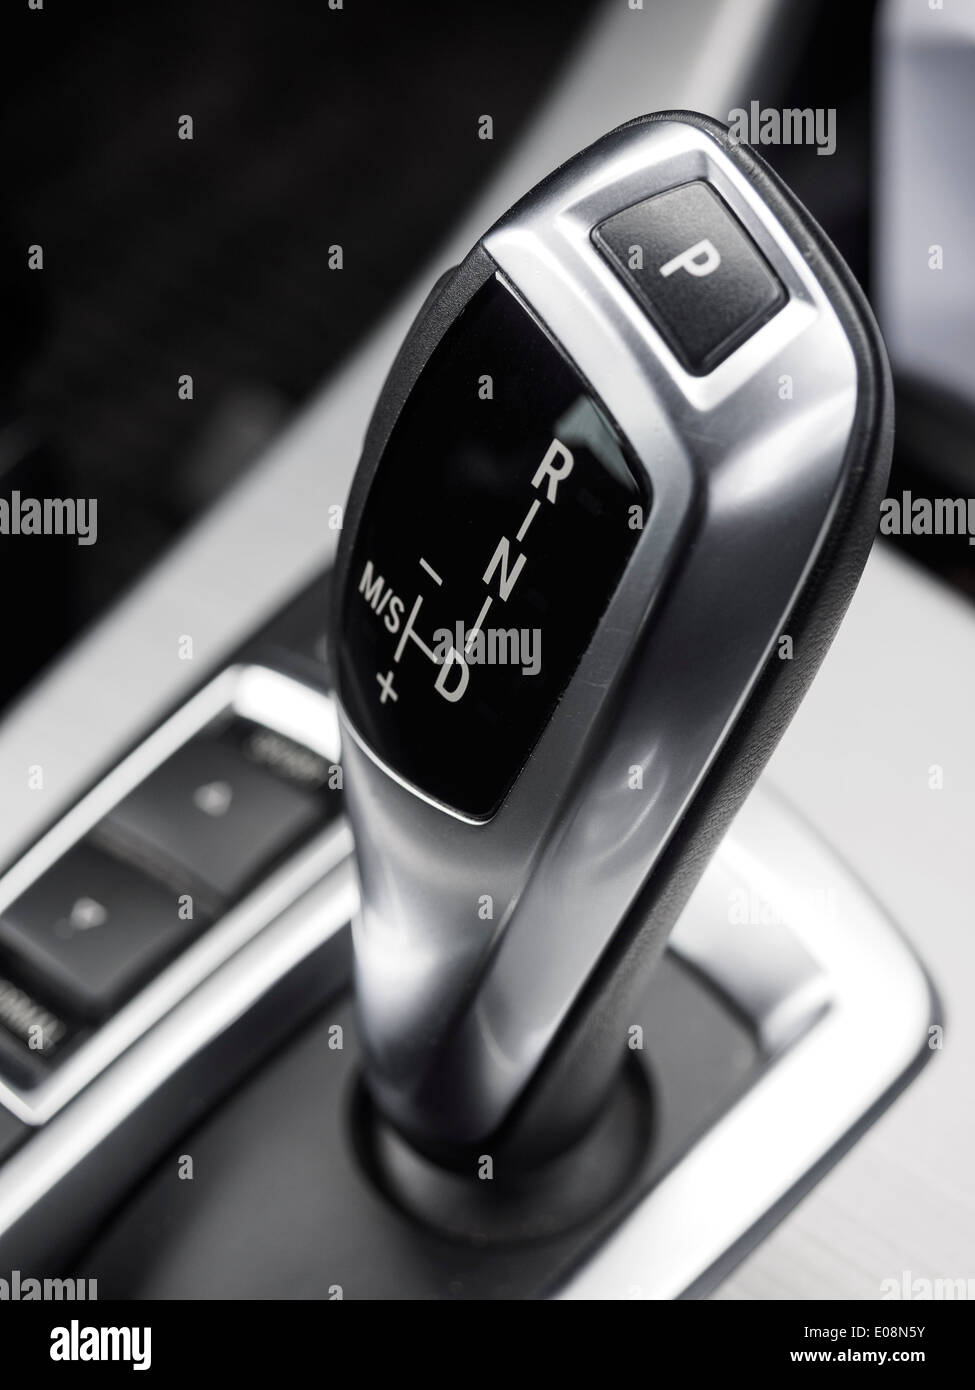 Automatic gearbox lever Stock Photo: 69033719 - Alamy